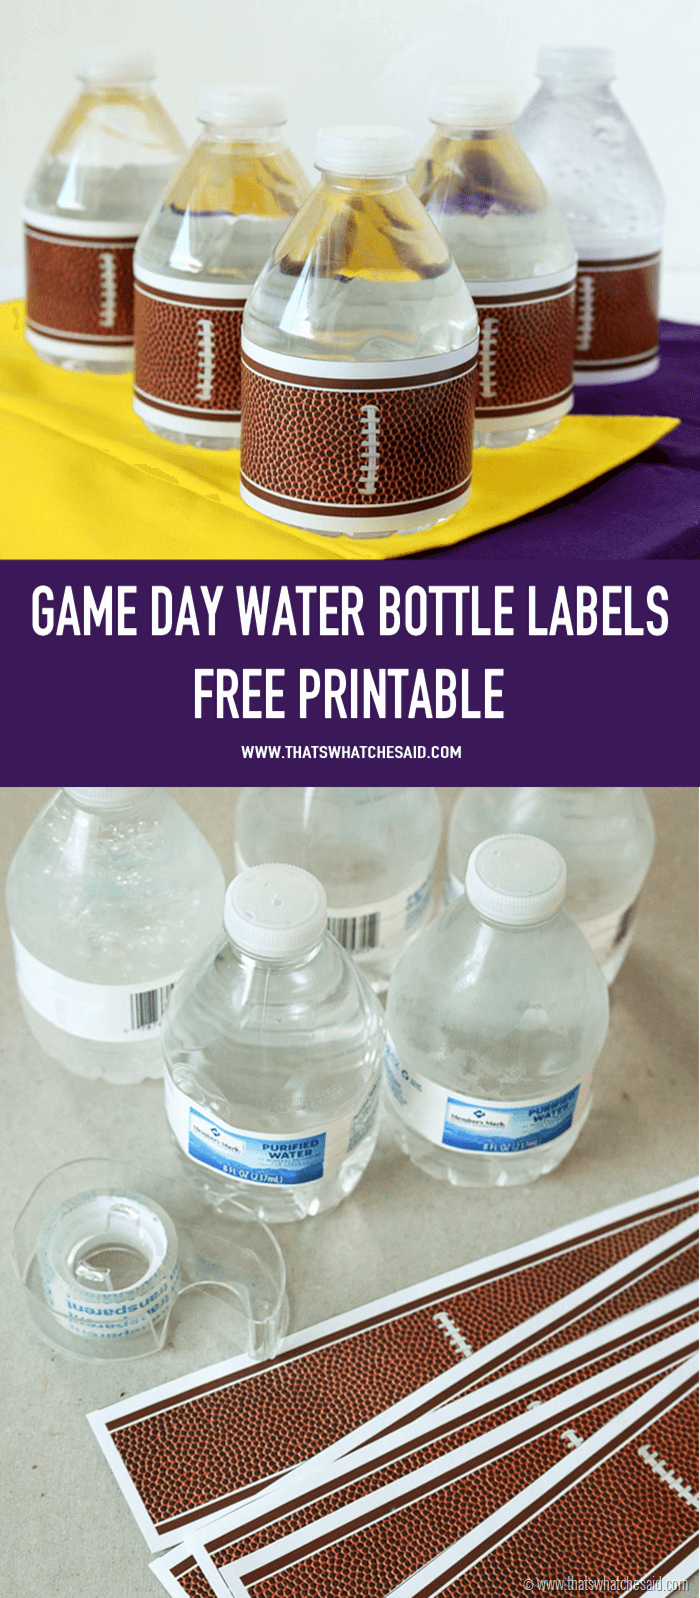 Printable Water Bottle Labels Luxury Football Water Bottle Labels that S What Che Said